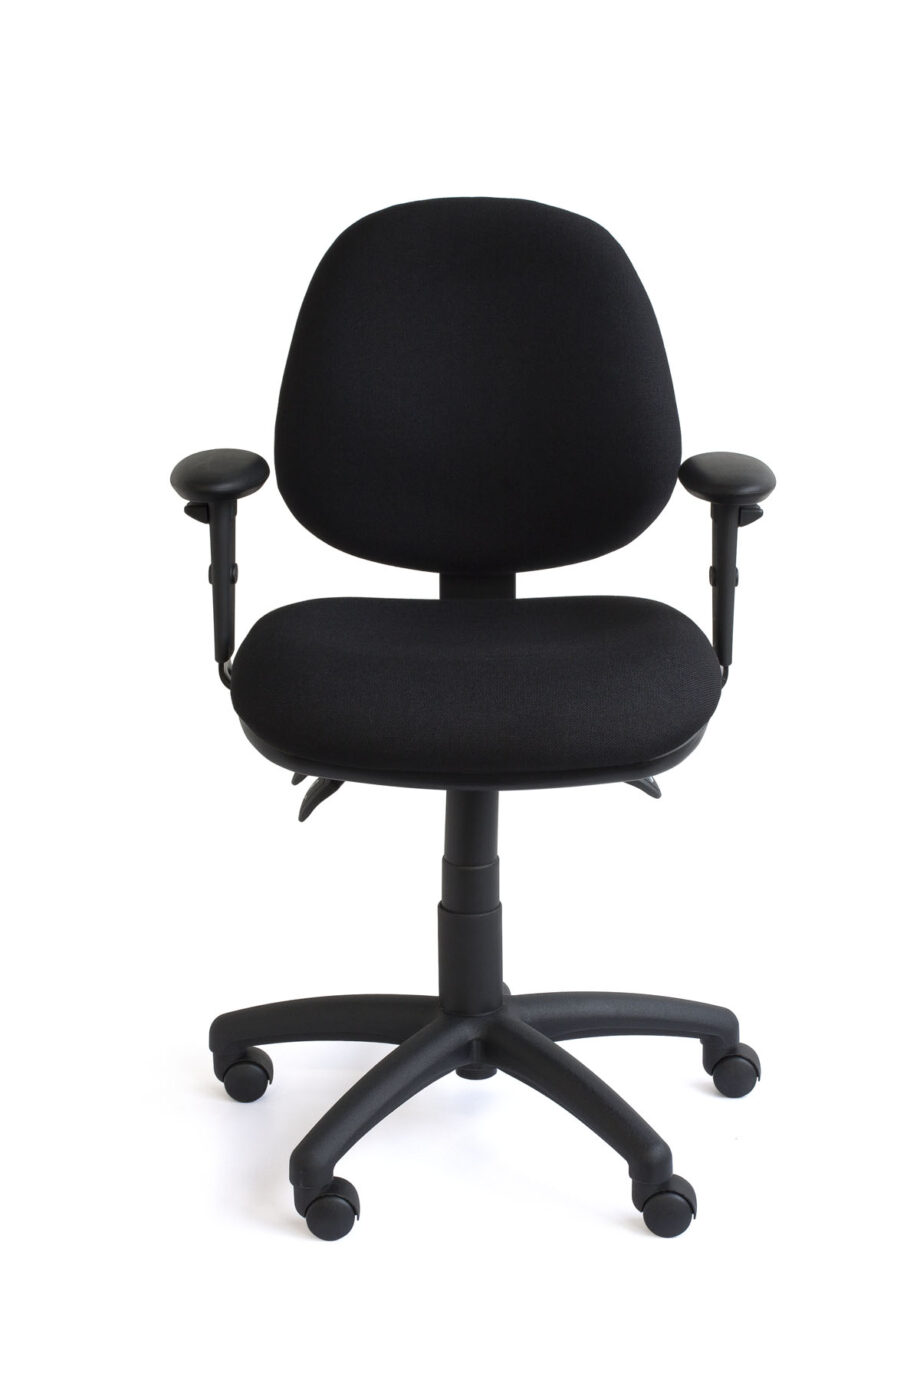 Affordable Gregory chair